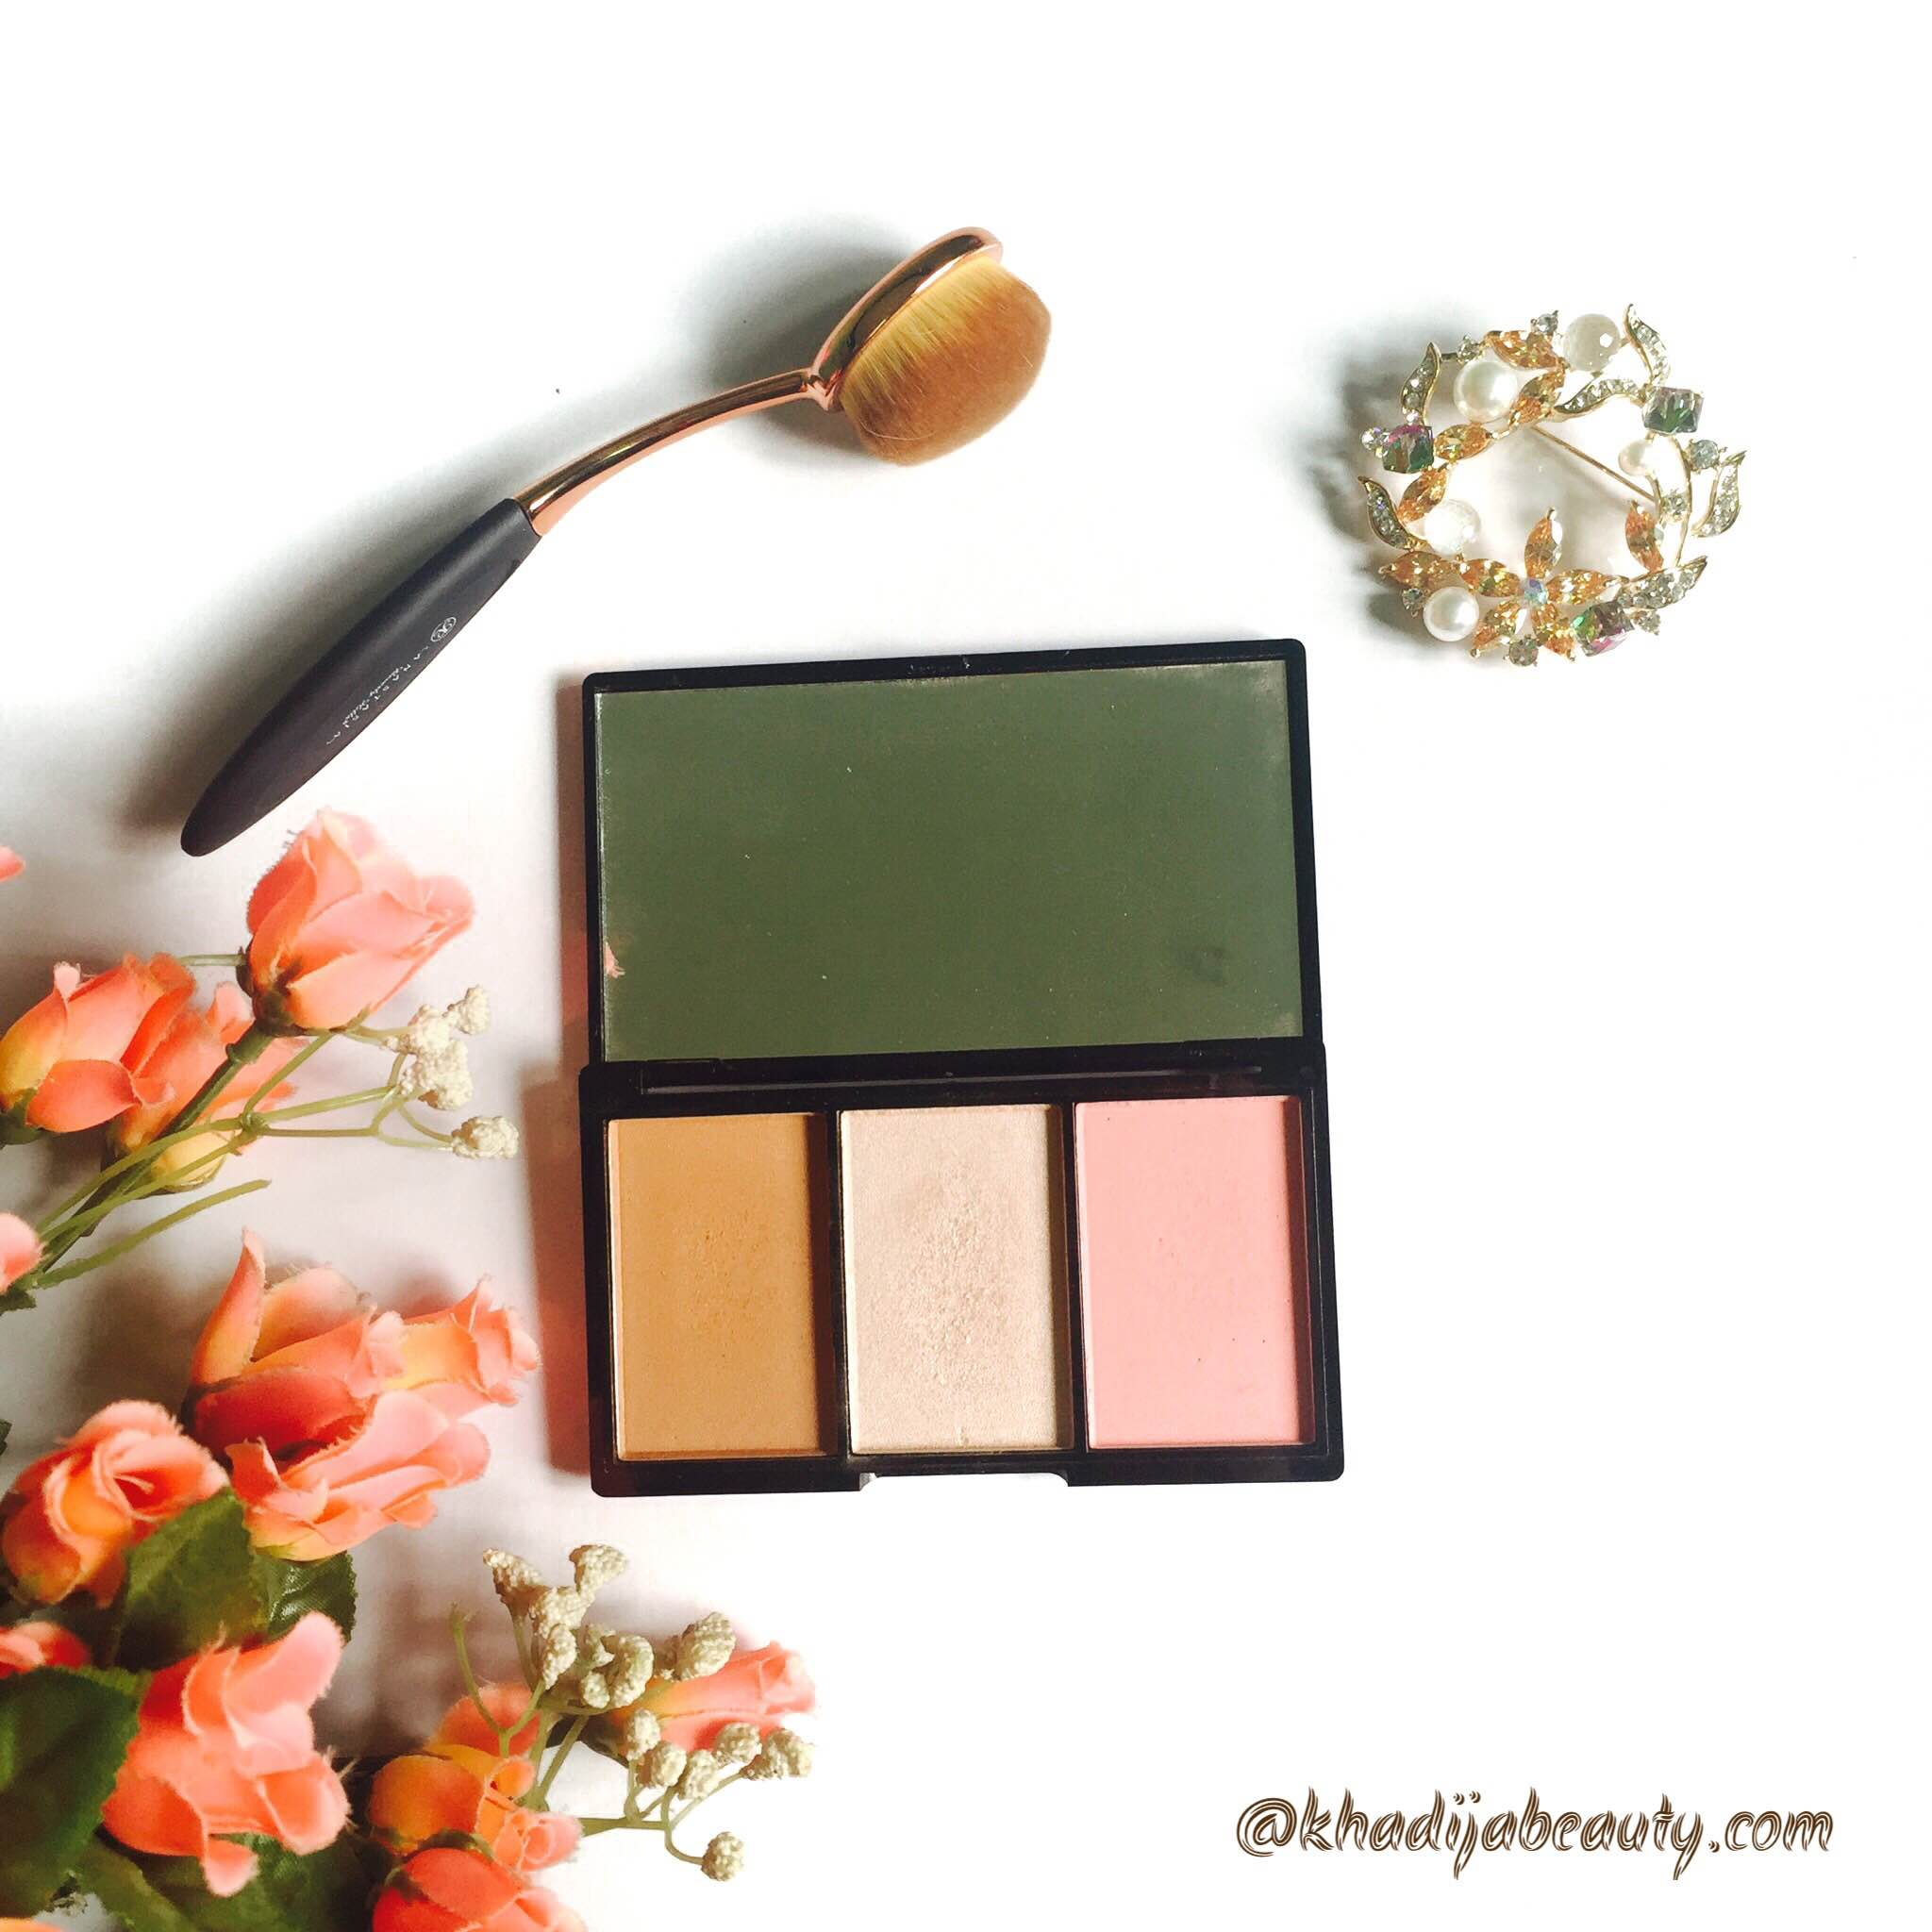 makeup-revolution-iconic-blush-bronze-and-brighten-palette-review-khadijabeauty-3